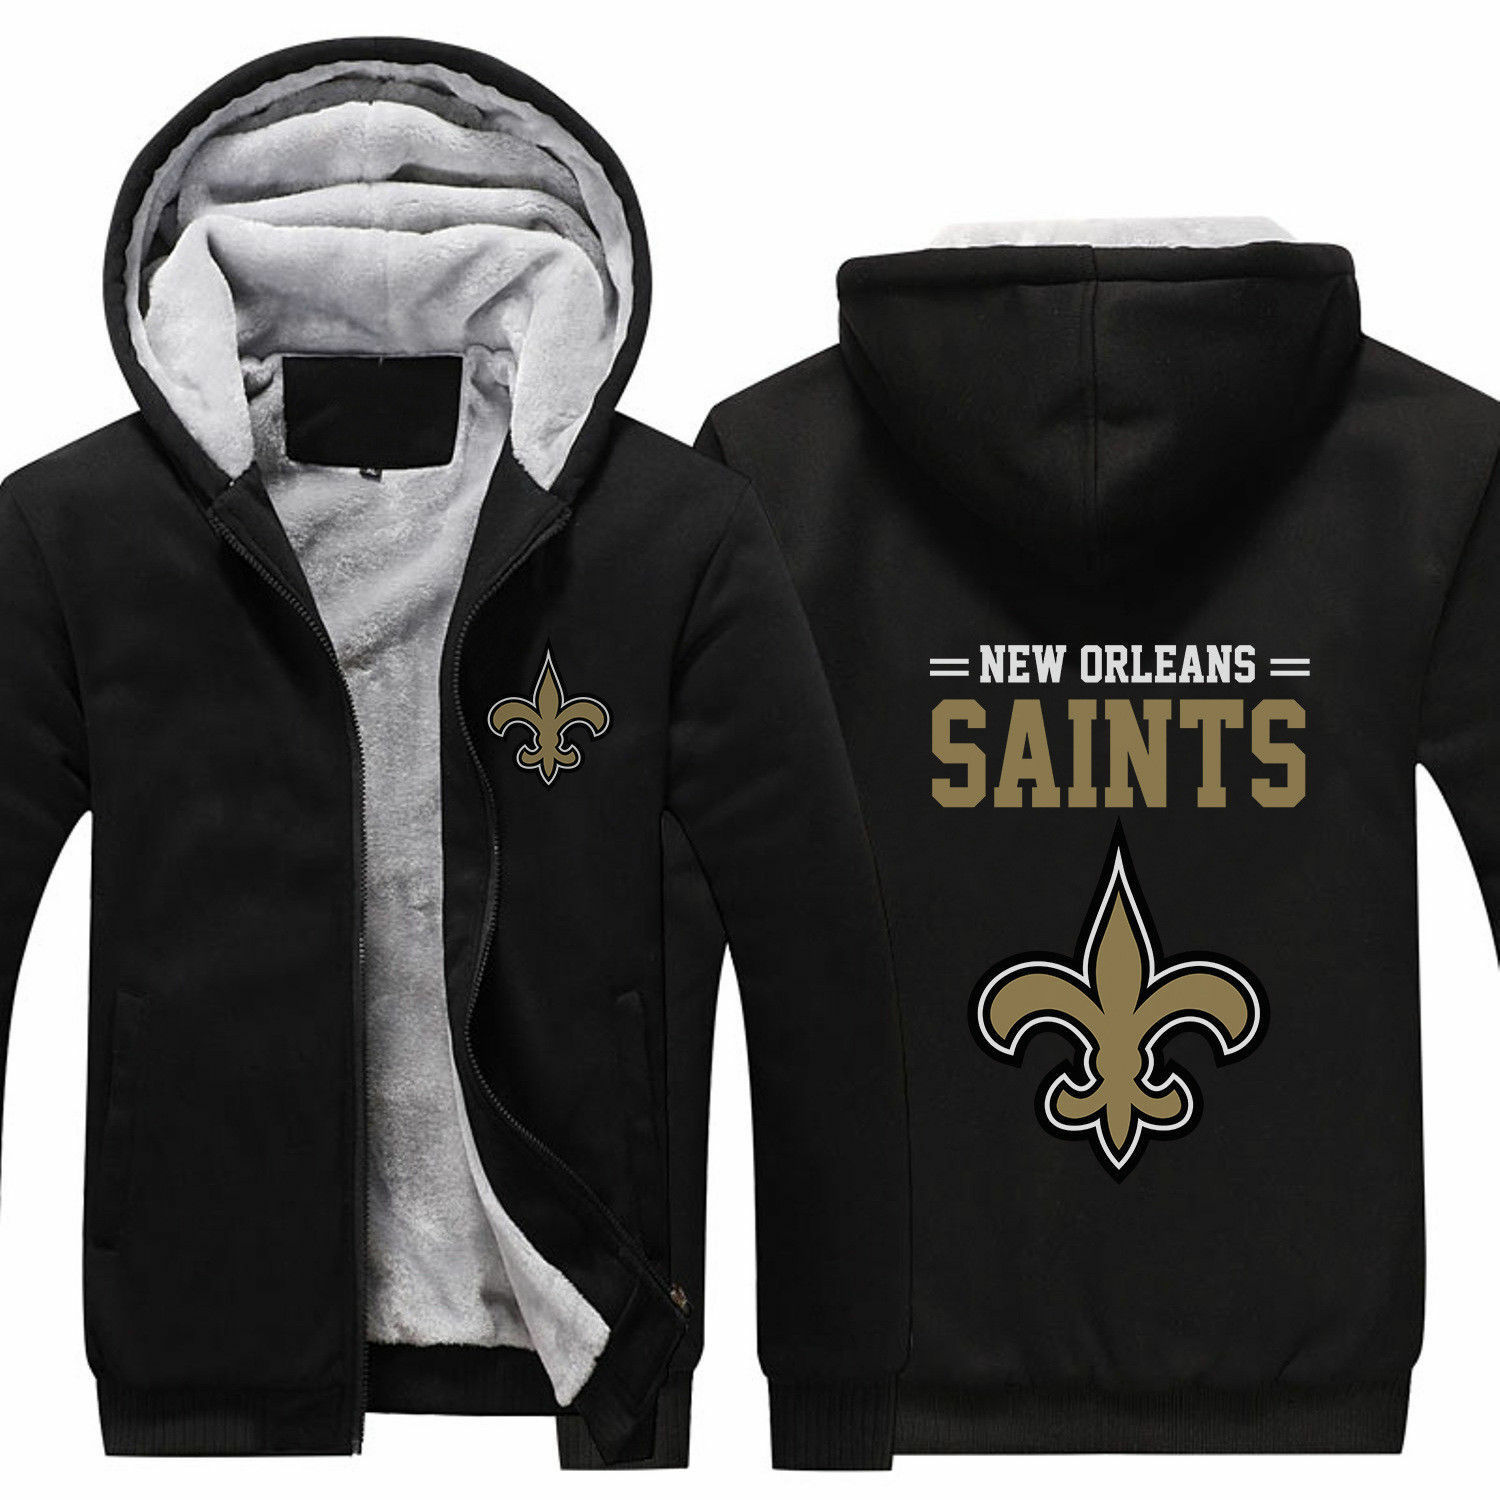 low priced f1a78 962be Details about New Orleans SAINTS Hoodie Jacket Thicken Coat Luminous  Sweatshirt